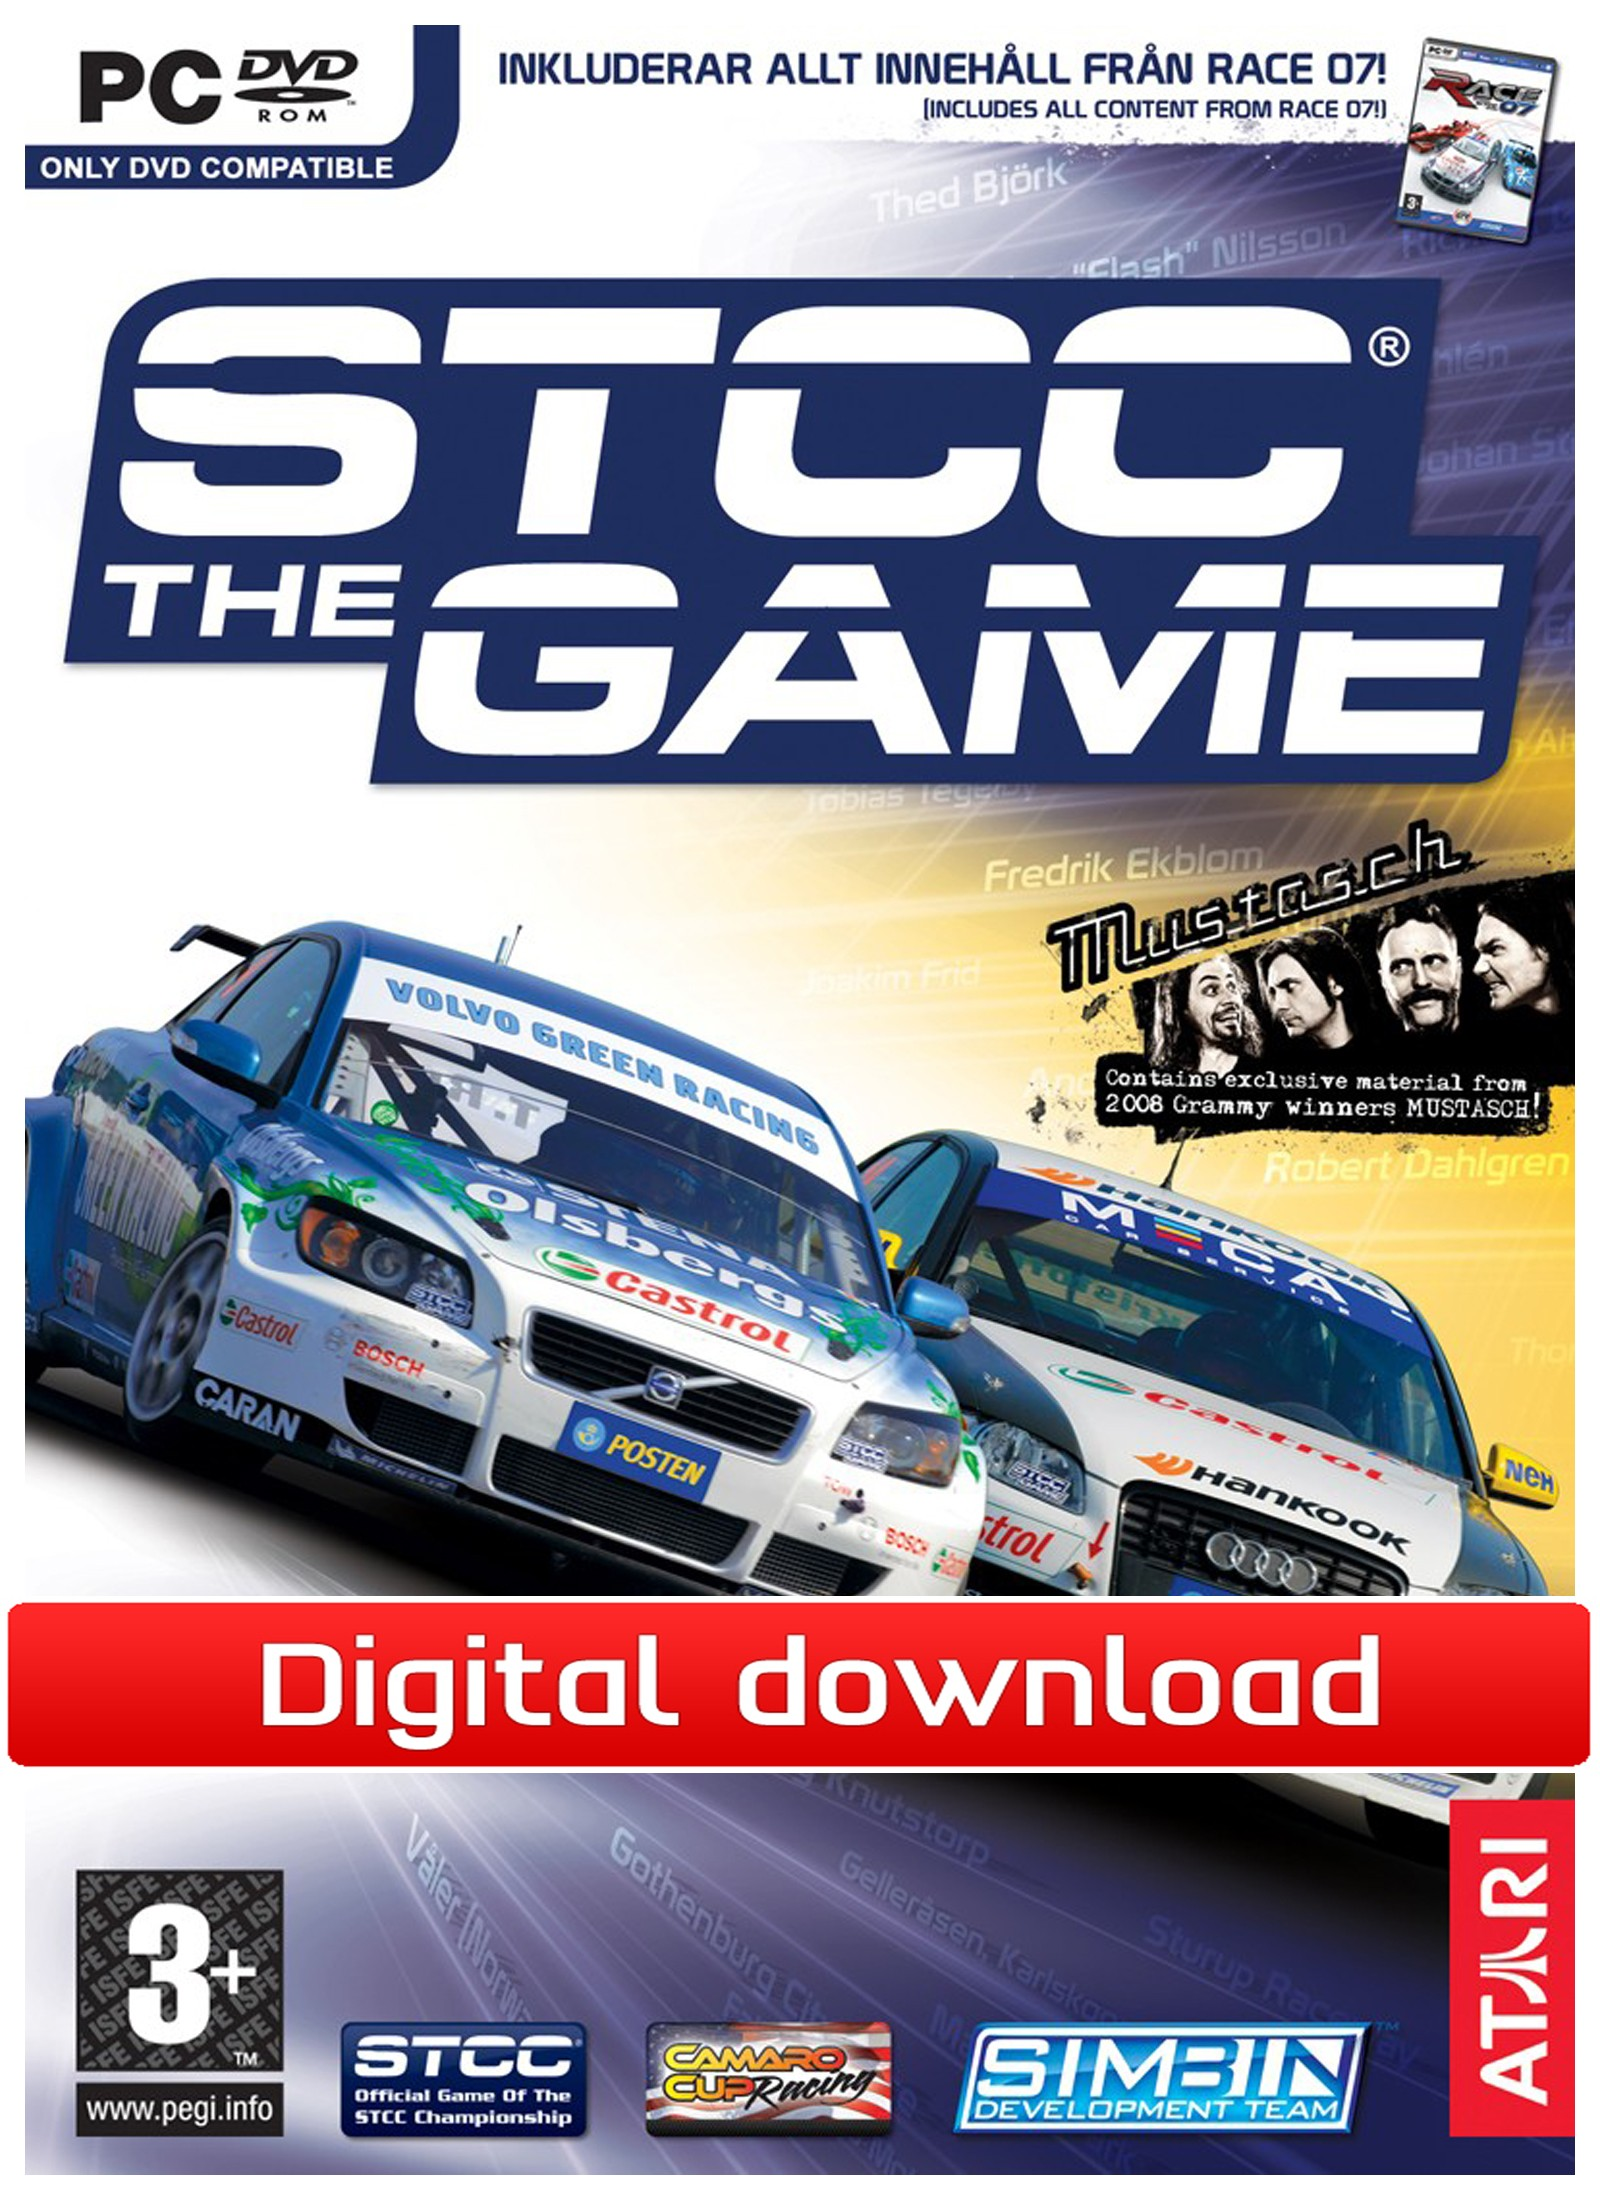 28528 : STCC The Game (PC nedlastning)